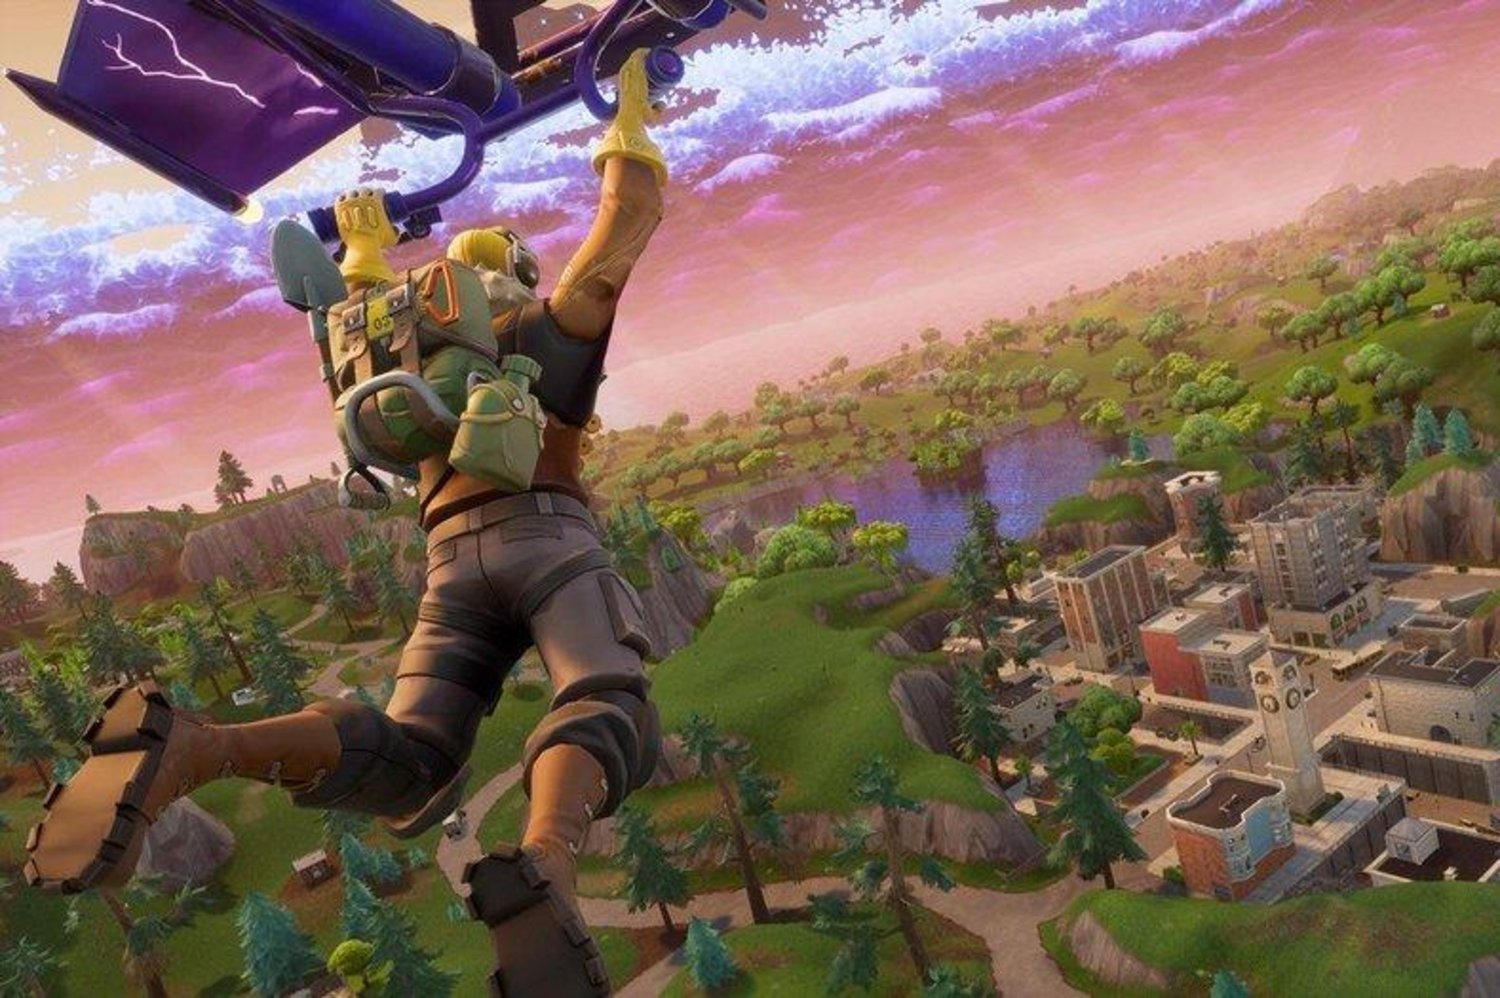 Fortnite sur Android : configuration minimale requise et liste d'appareils compatibles